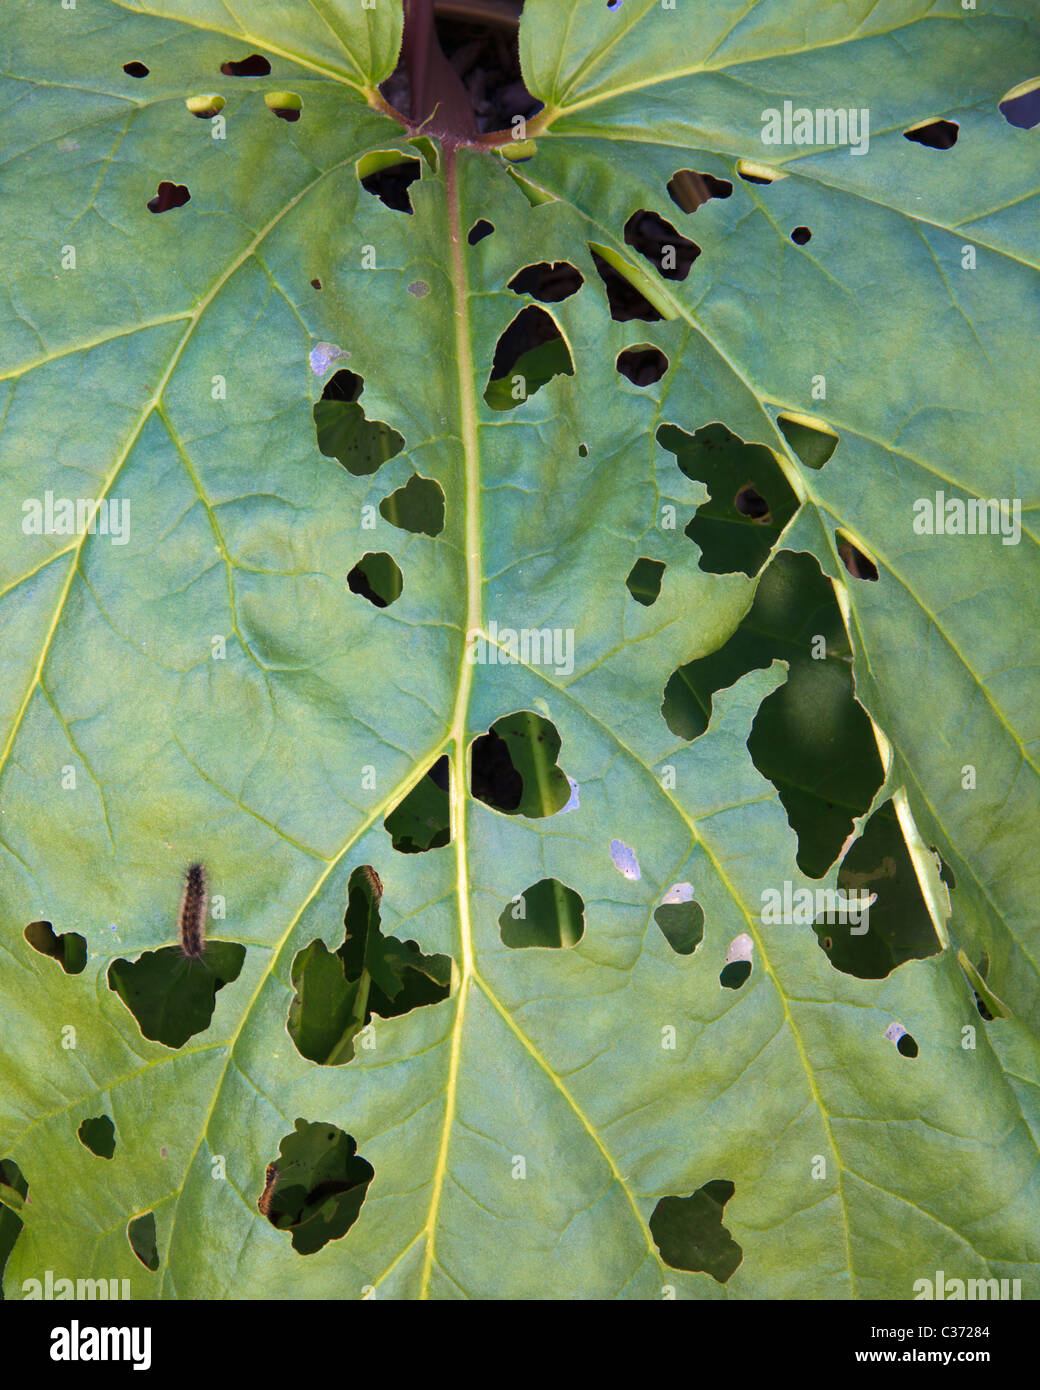 Rhubarb leaf  covered in holes from caterpillar damage - Stock Image